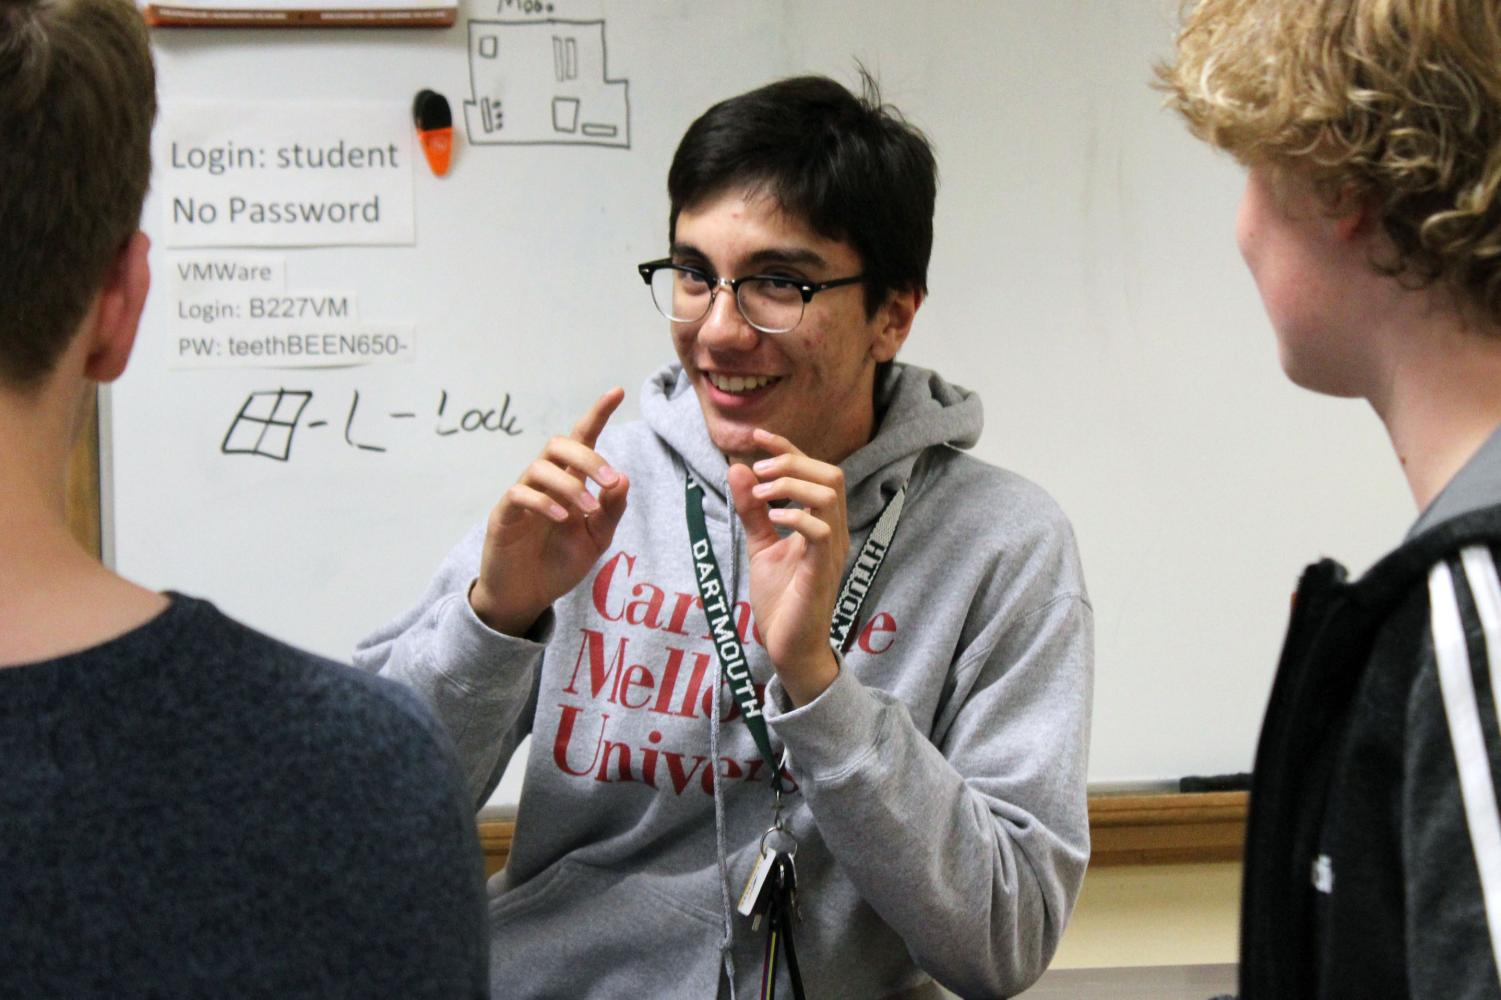 Senior Michael Ramirez discusses strategy for Park Tech's next project during a meeting after school Oct. 2. Ramirez specializes in software and digital aspects of the club.